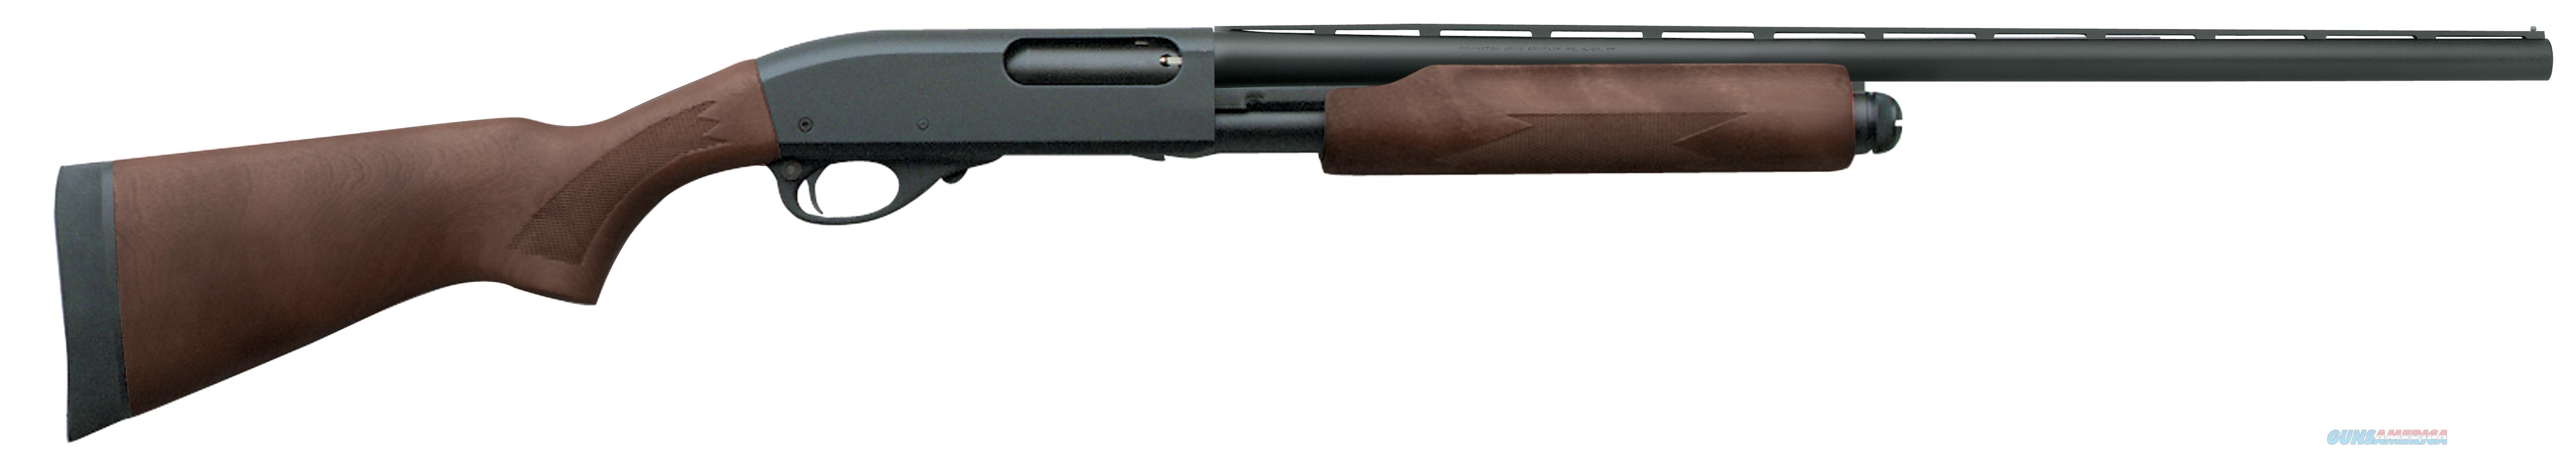 "Remington Firearms 25100 870 Express Super Magnum Pump 12 Gauge 28"" 3.5"" Walnut Stk Black Rcvr 25100  Guns > Shotguns > R Misc Shotguns"